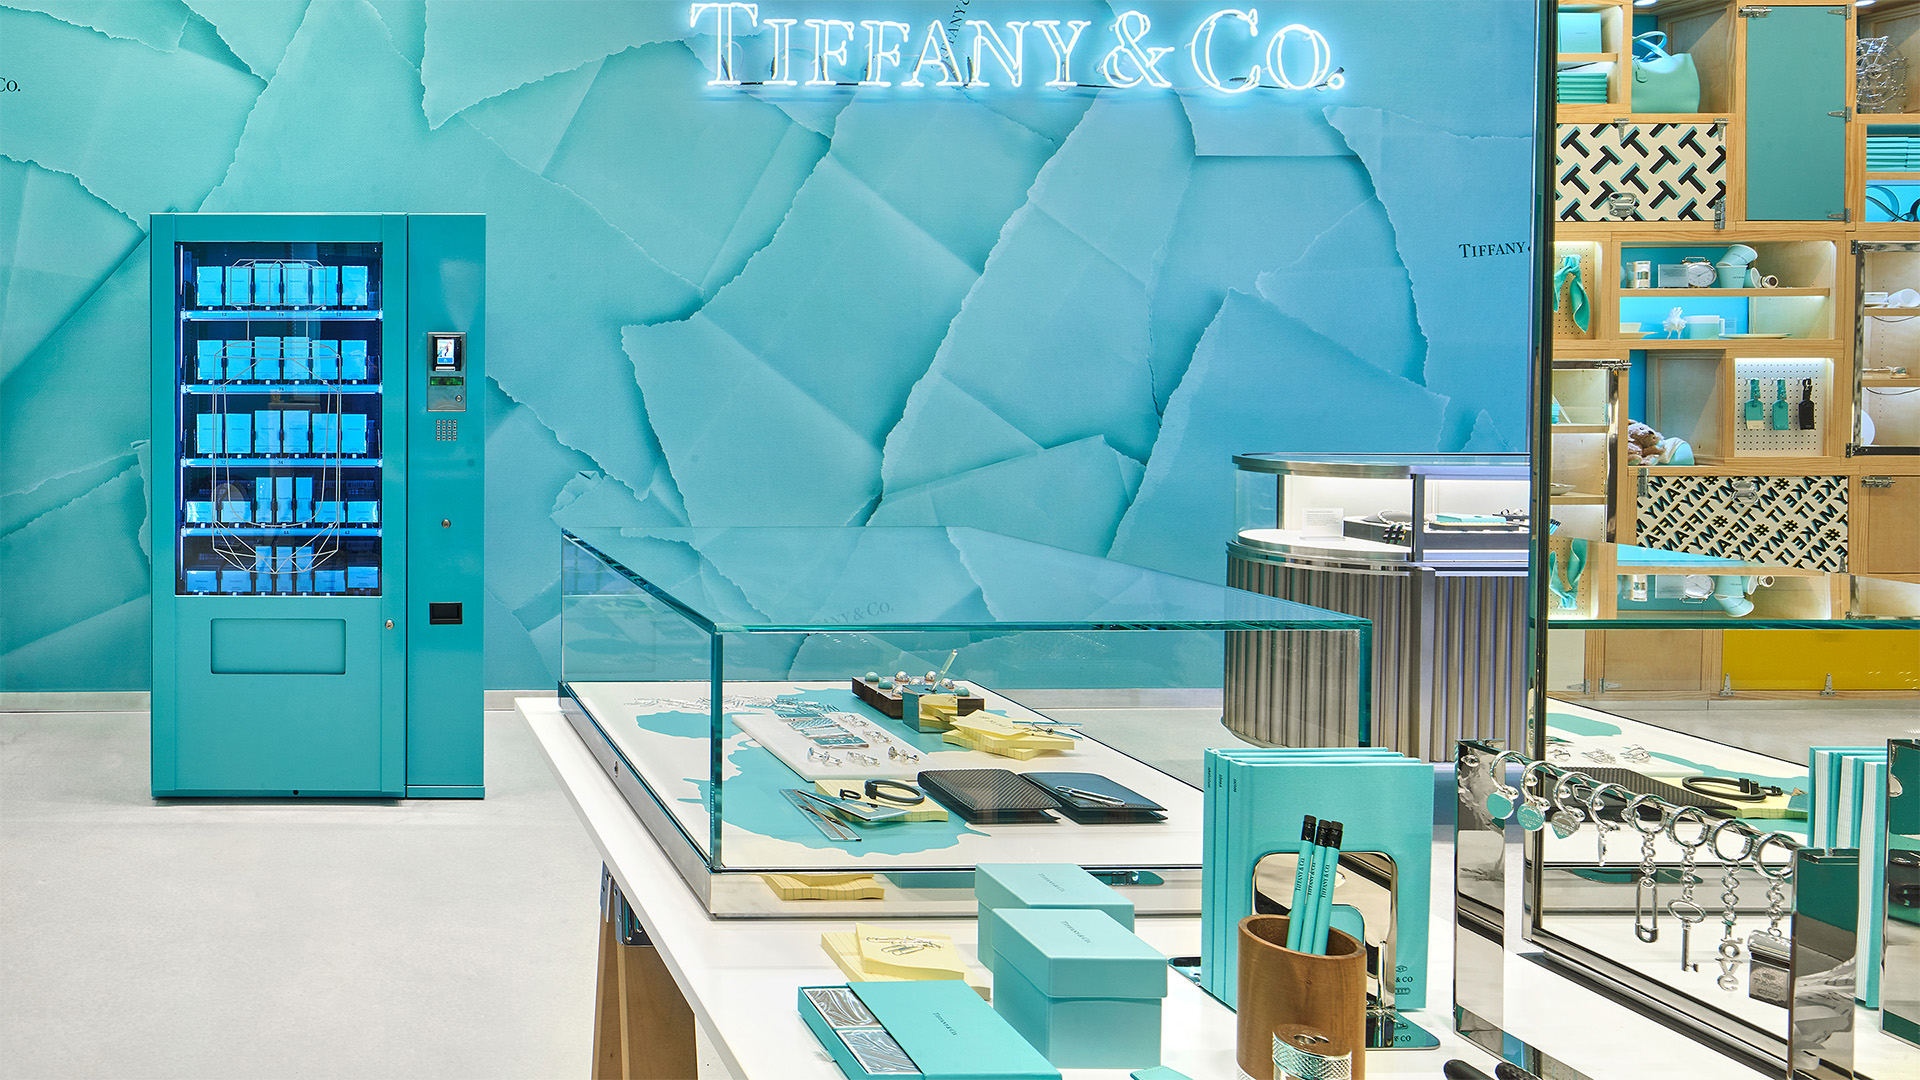 Tiffany & Co new store concept in London at Covent Garden